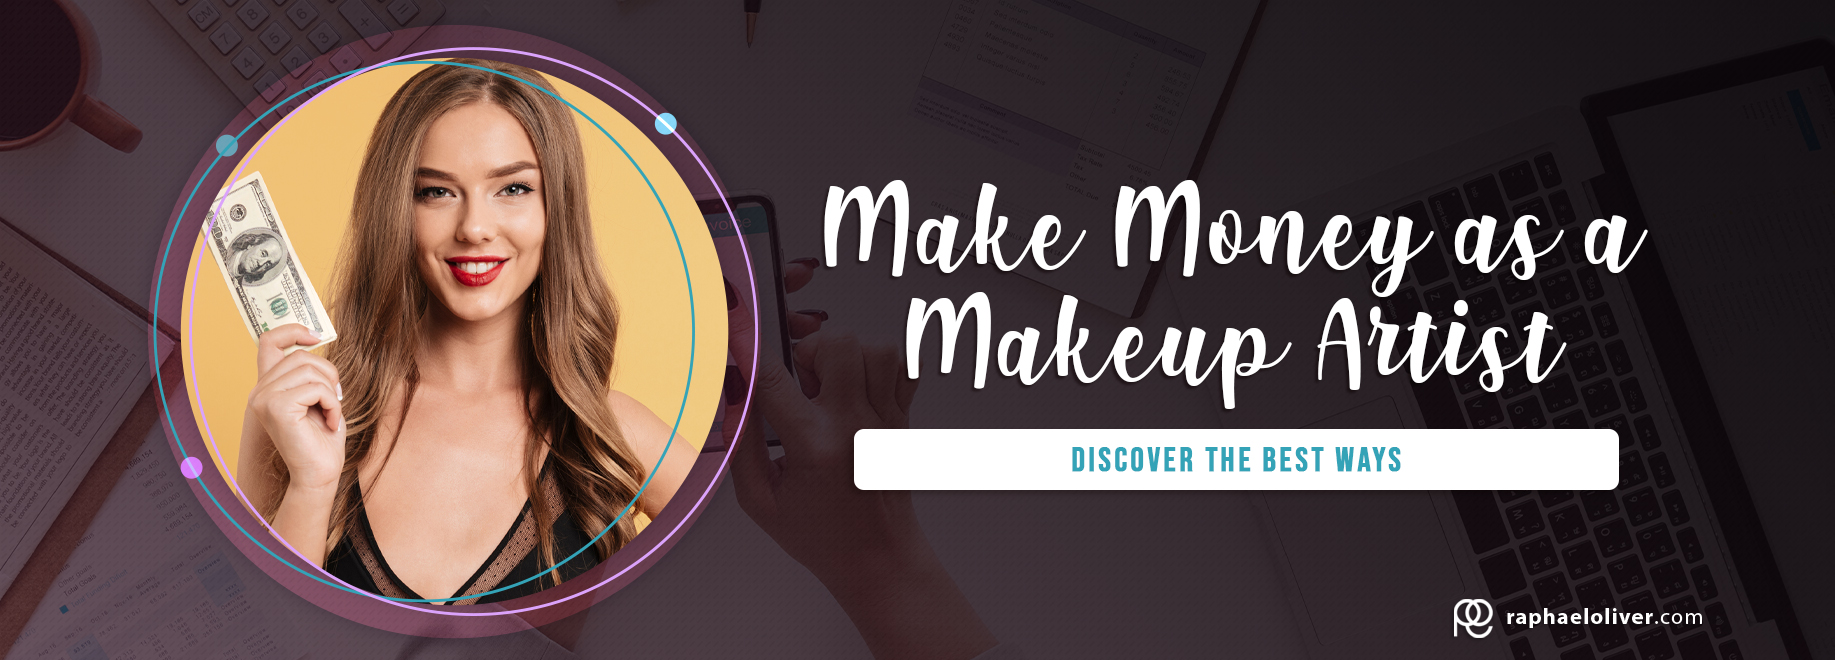 Discover the best ways to make money as a makeup artist and get unlimited profits on the internet